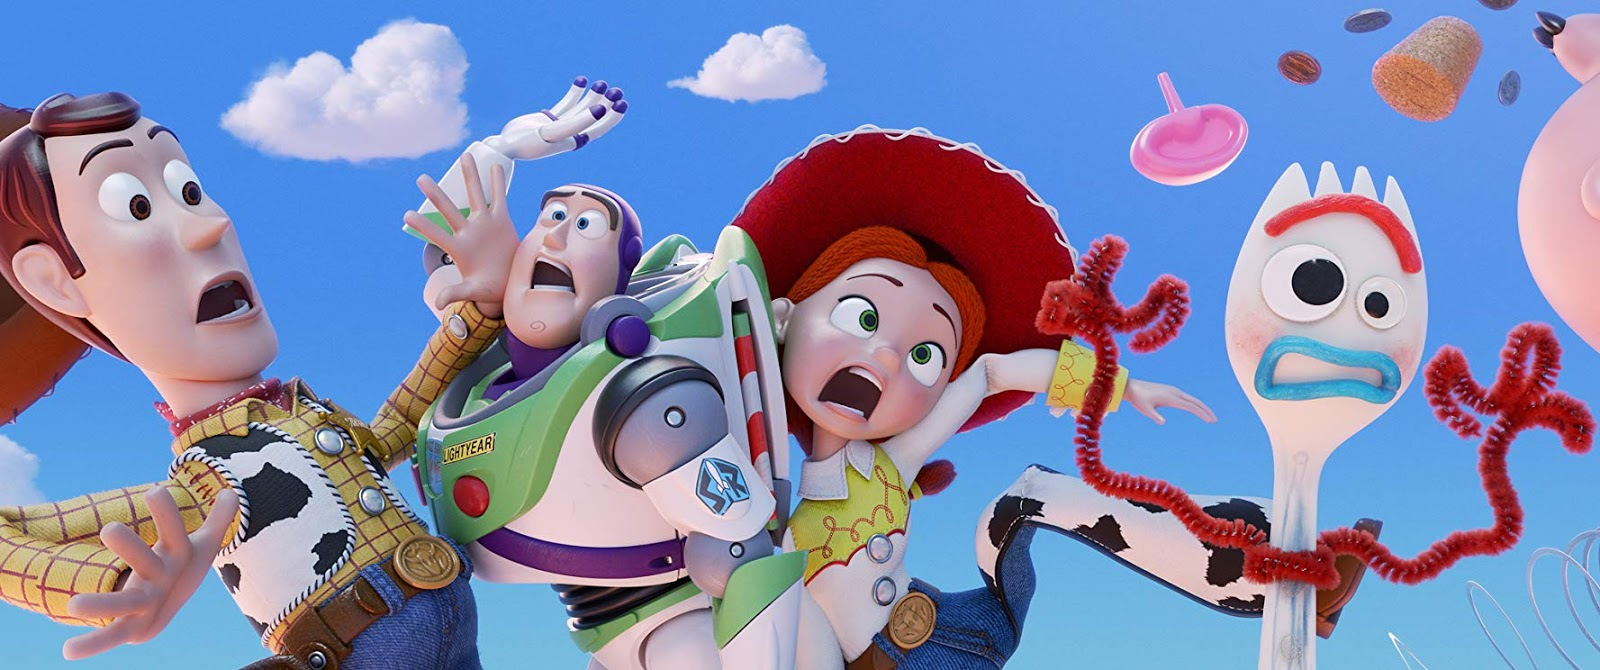 Upcoming Animated Movie 'Toy Story 4' Teaser Trailer Out Now